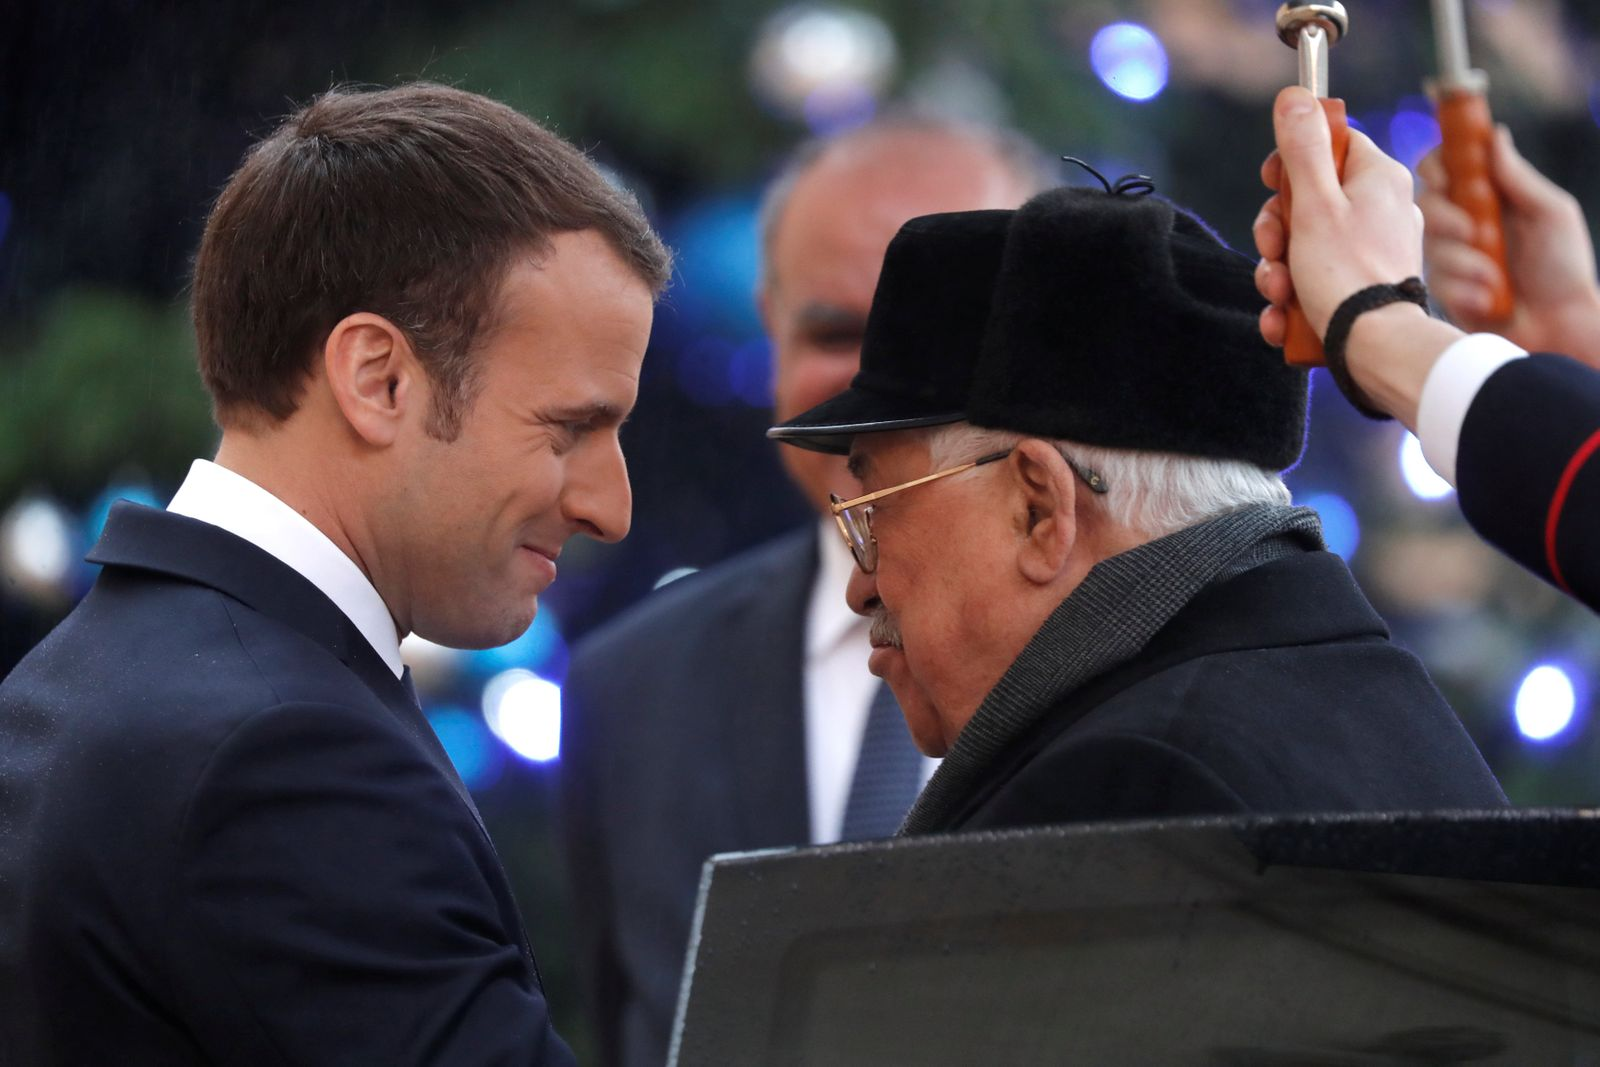 French President Macron welcomes Palestinian President Abbas at the Elysee Palace in Paris